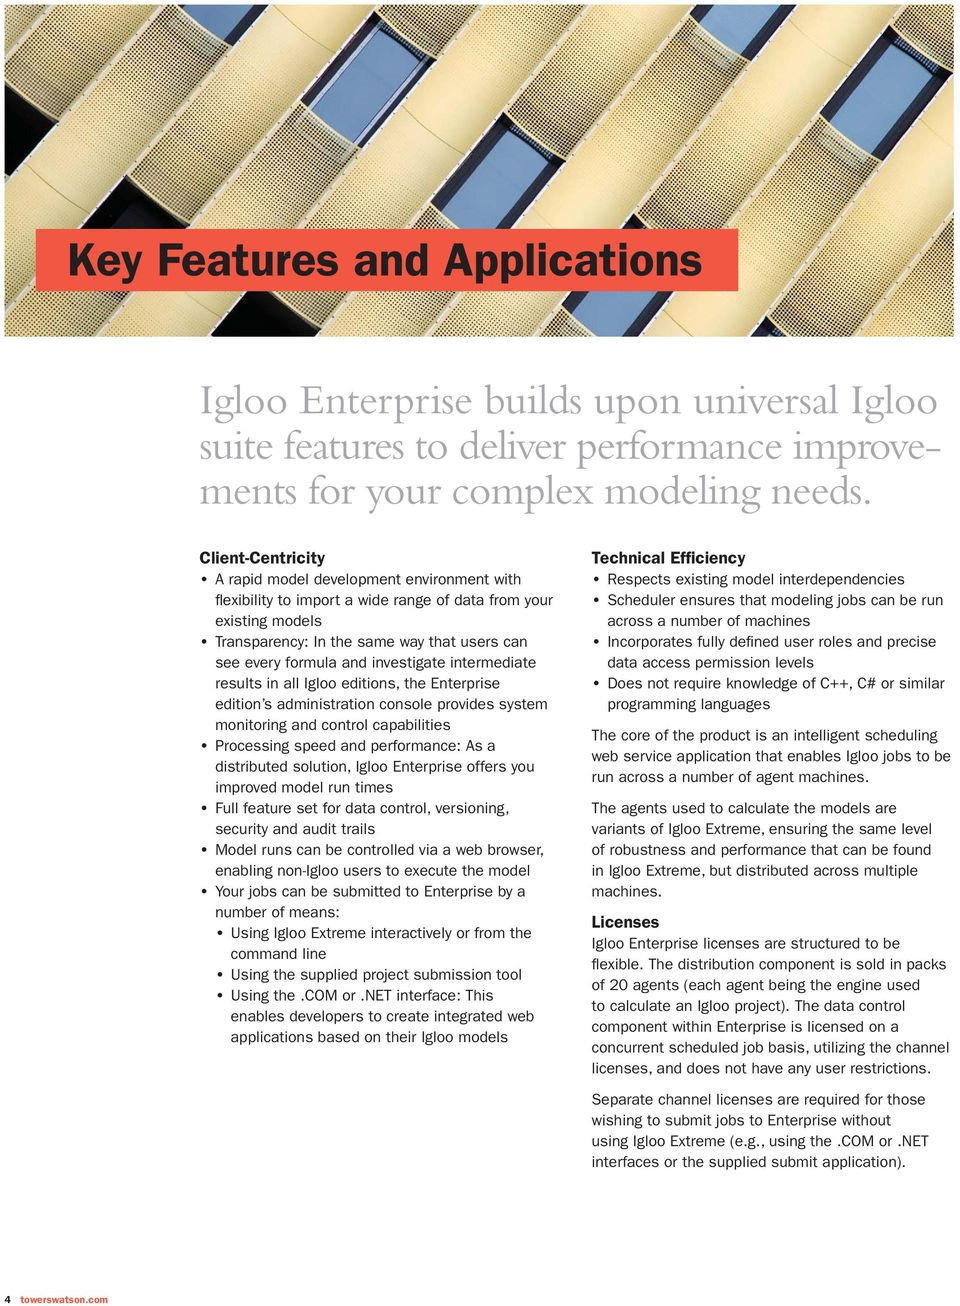 investigate intermediate results in all Igloo editions, the Enterprise edition s administration console provides system monitoring and control capabilities Processing speed and performance: As a